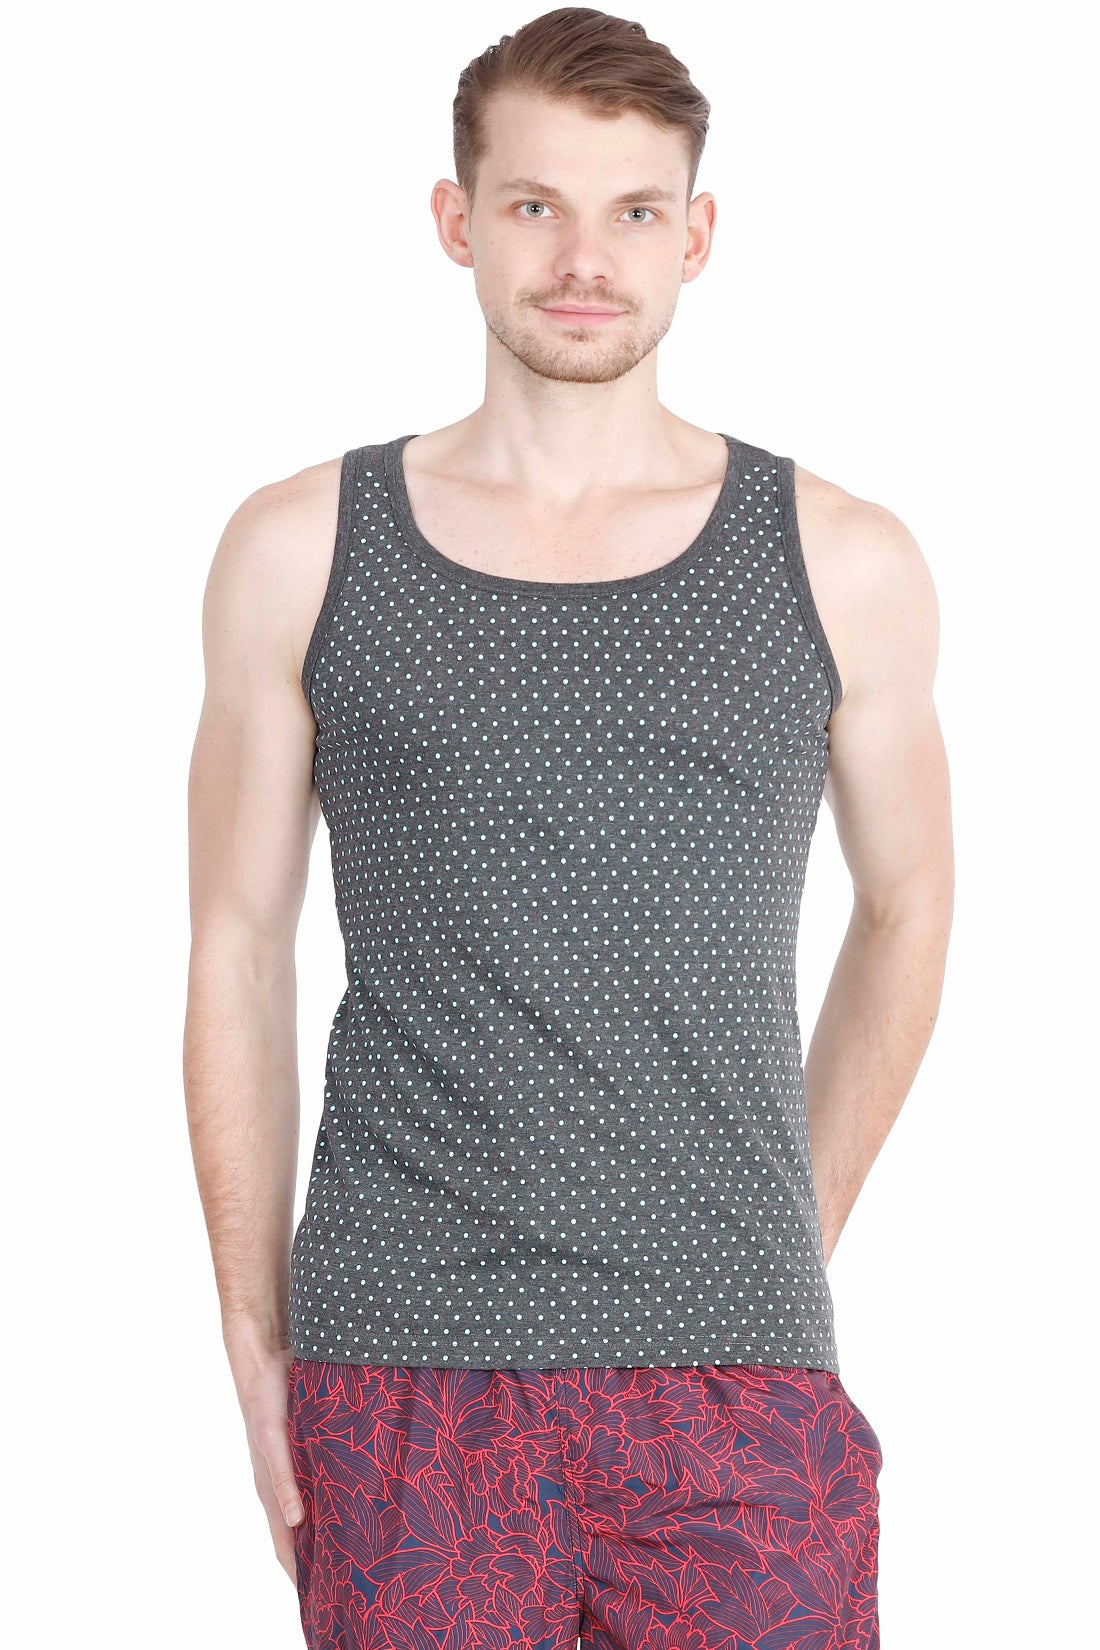 Hunt and Howe Men's Grey Printed Sleeveless T-Shirt